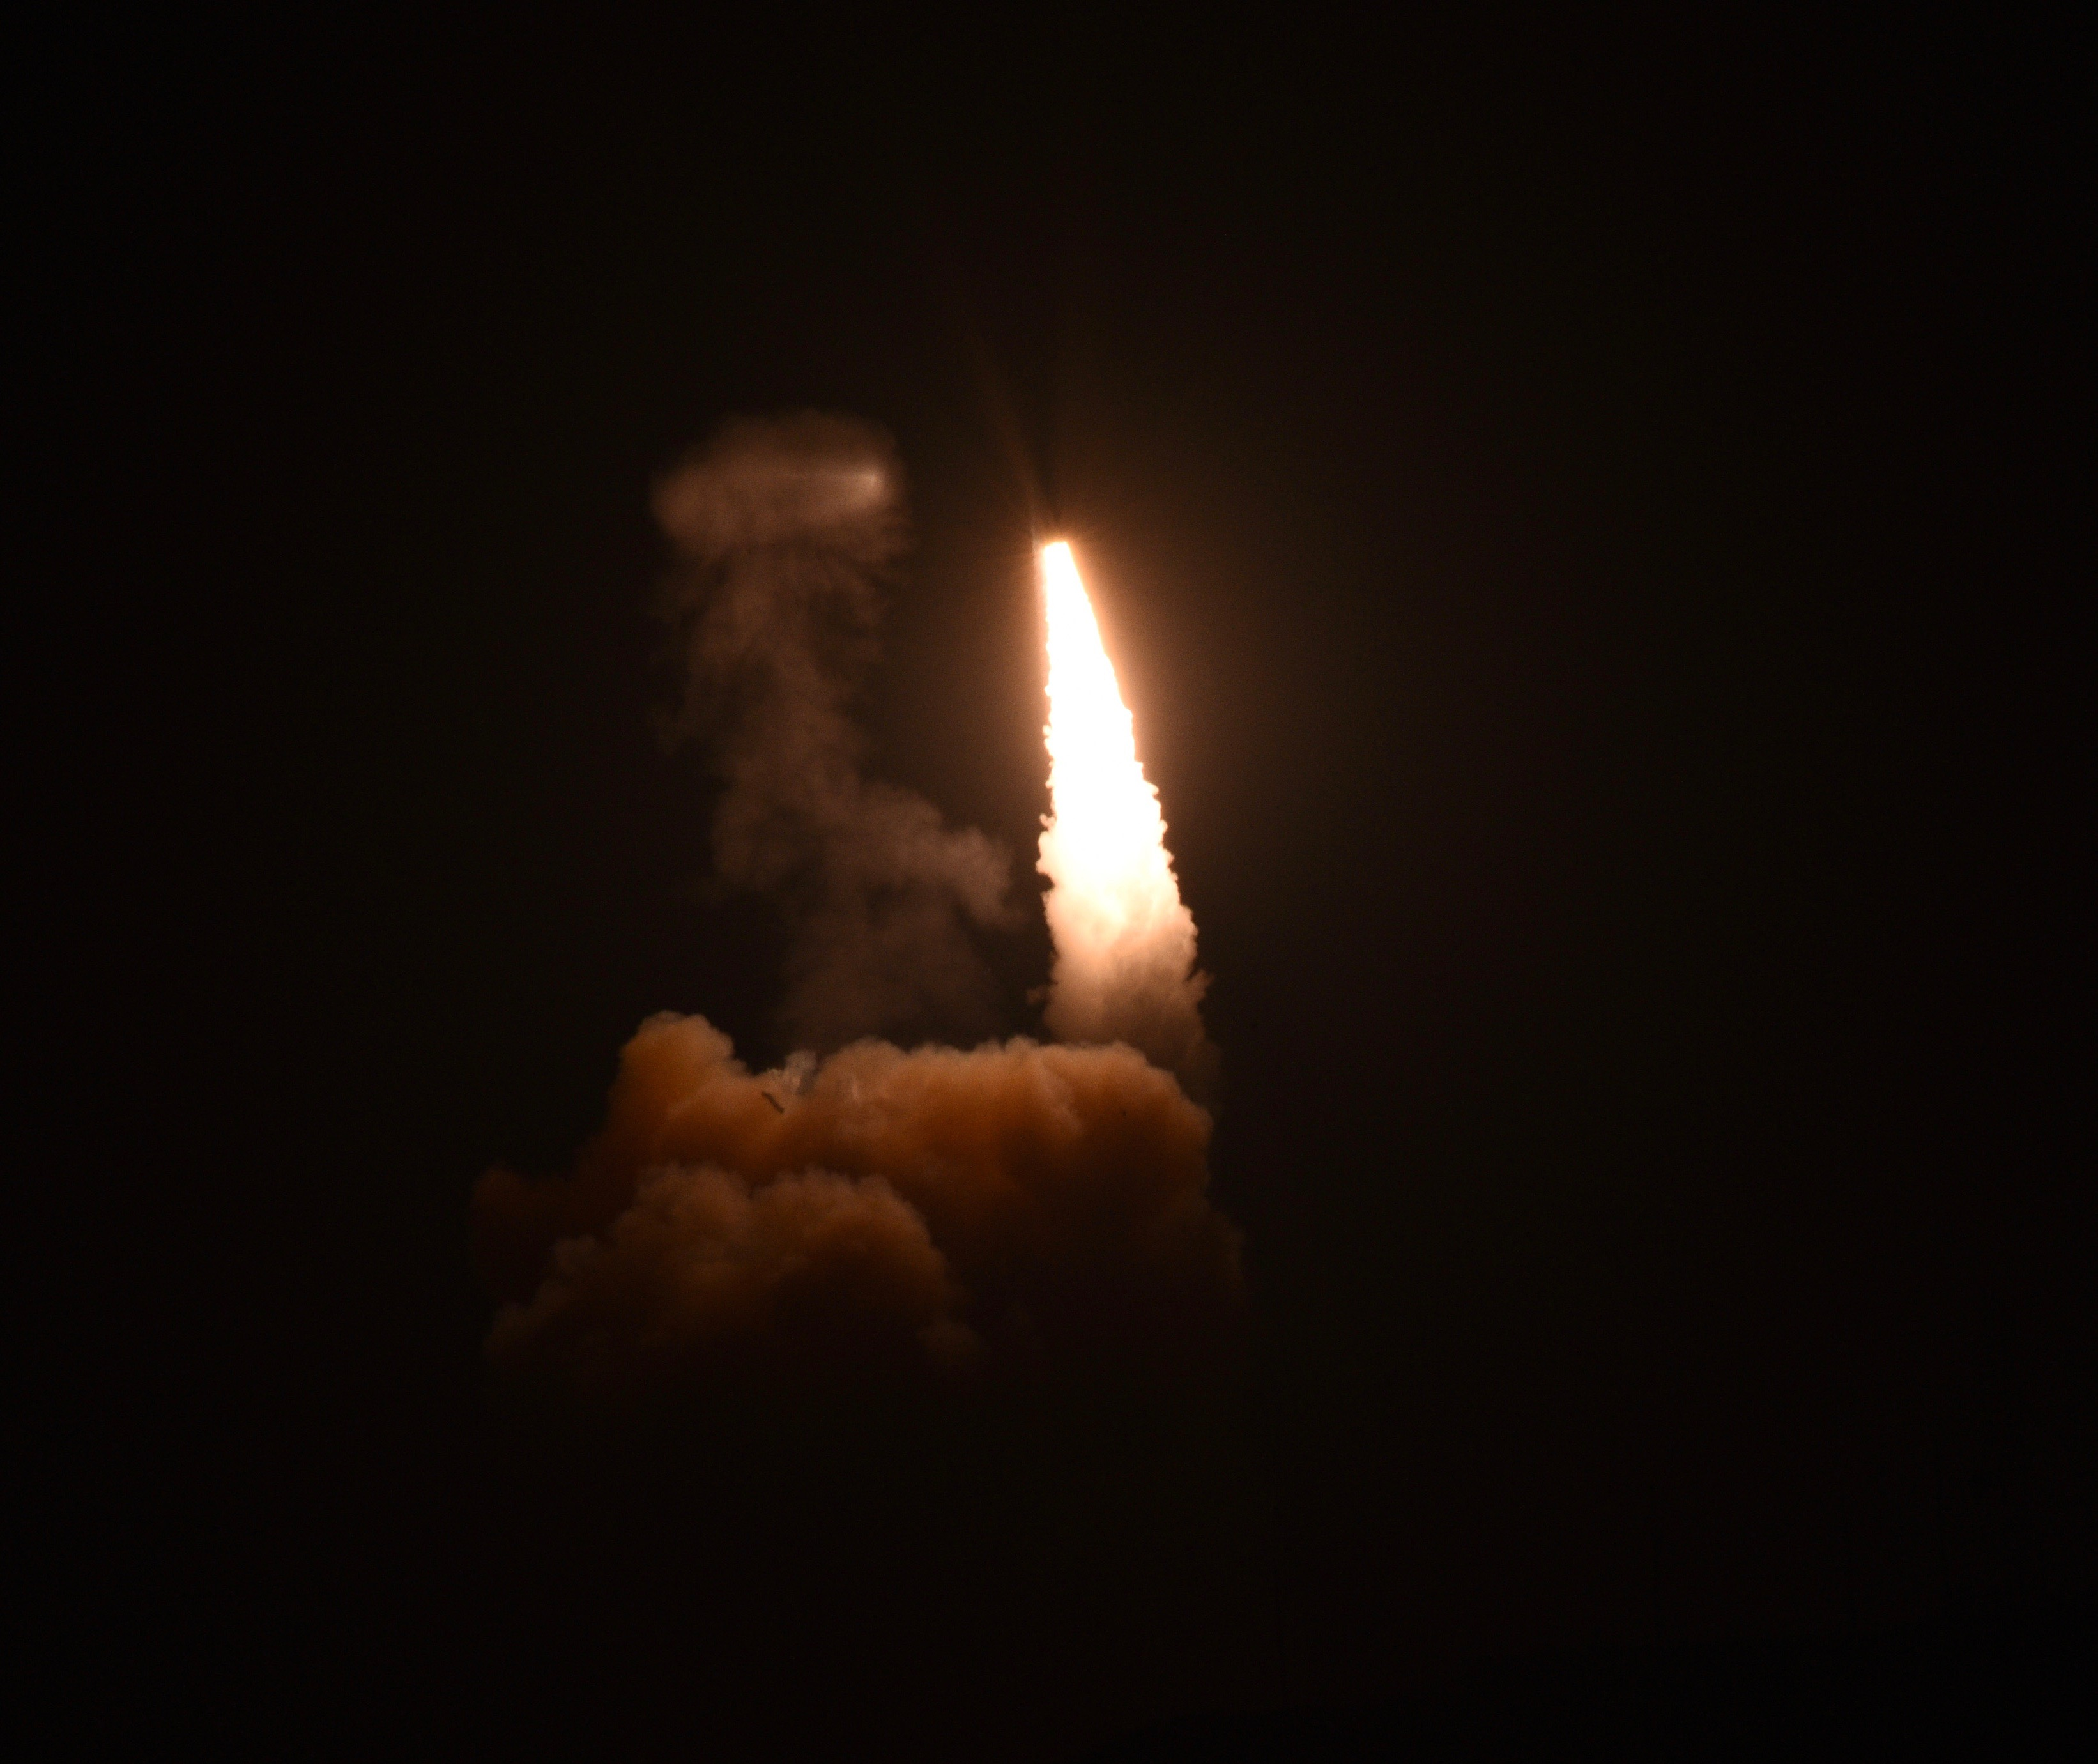 A Minuteman III intercontinental ballistic missile launches on an unarmed test run from California's Vandenberg Air Force Base just after midnight PDT on April 26, 2017.